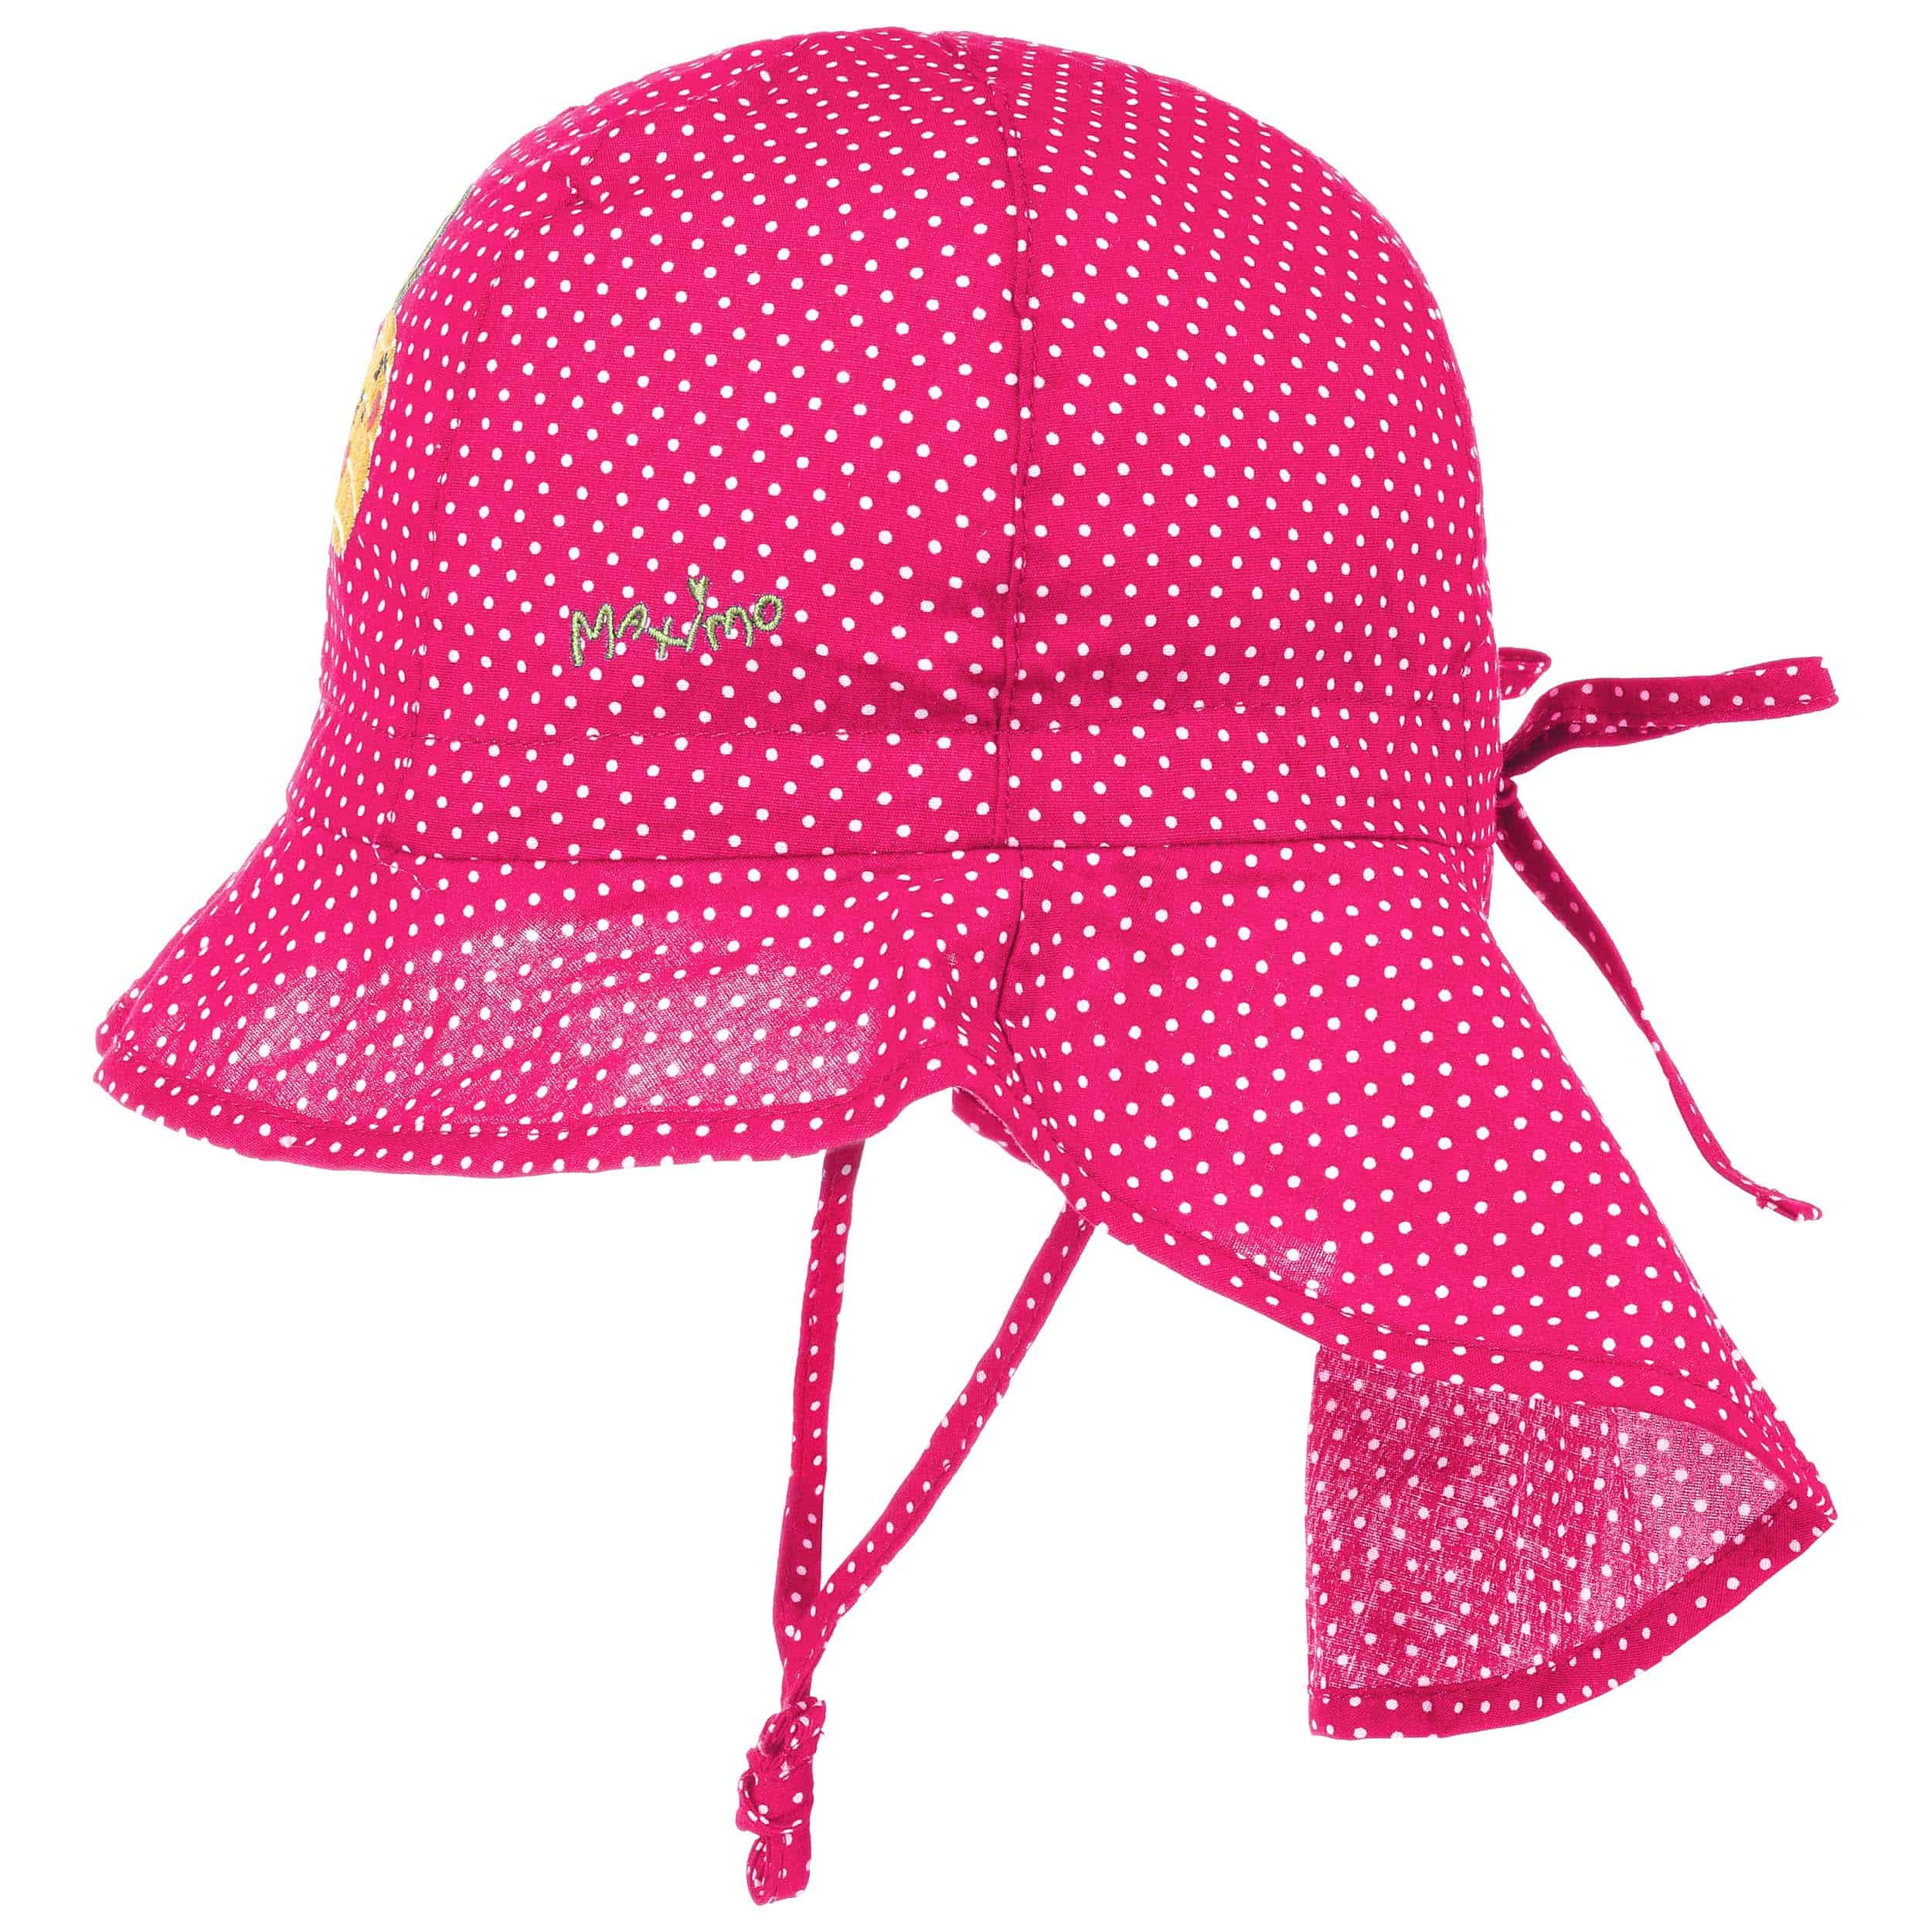 3d791481 ... Pomme Kids Sun Hat by maximo - pink 4 ...